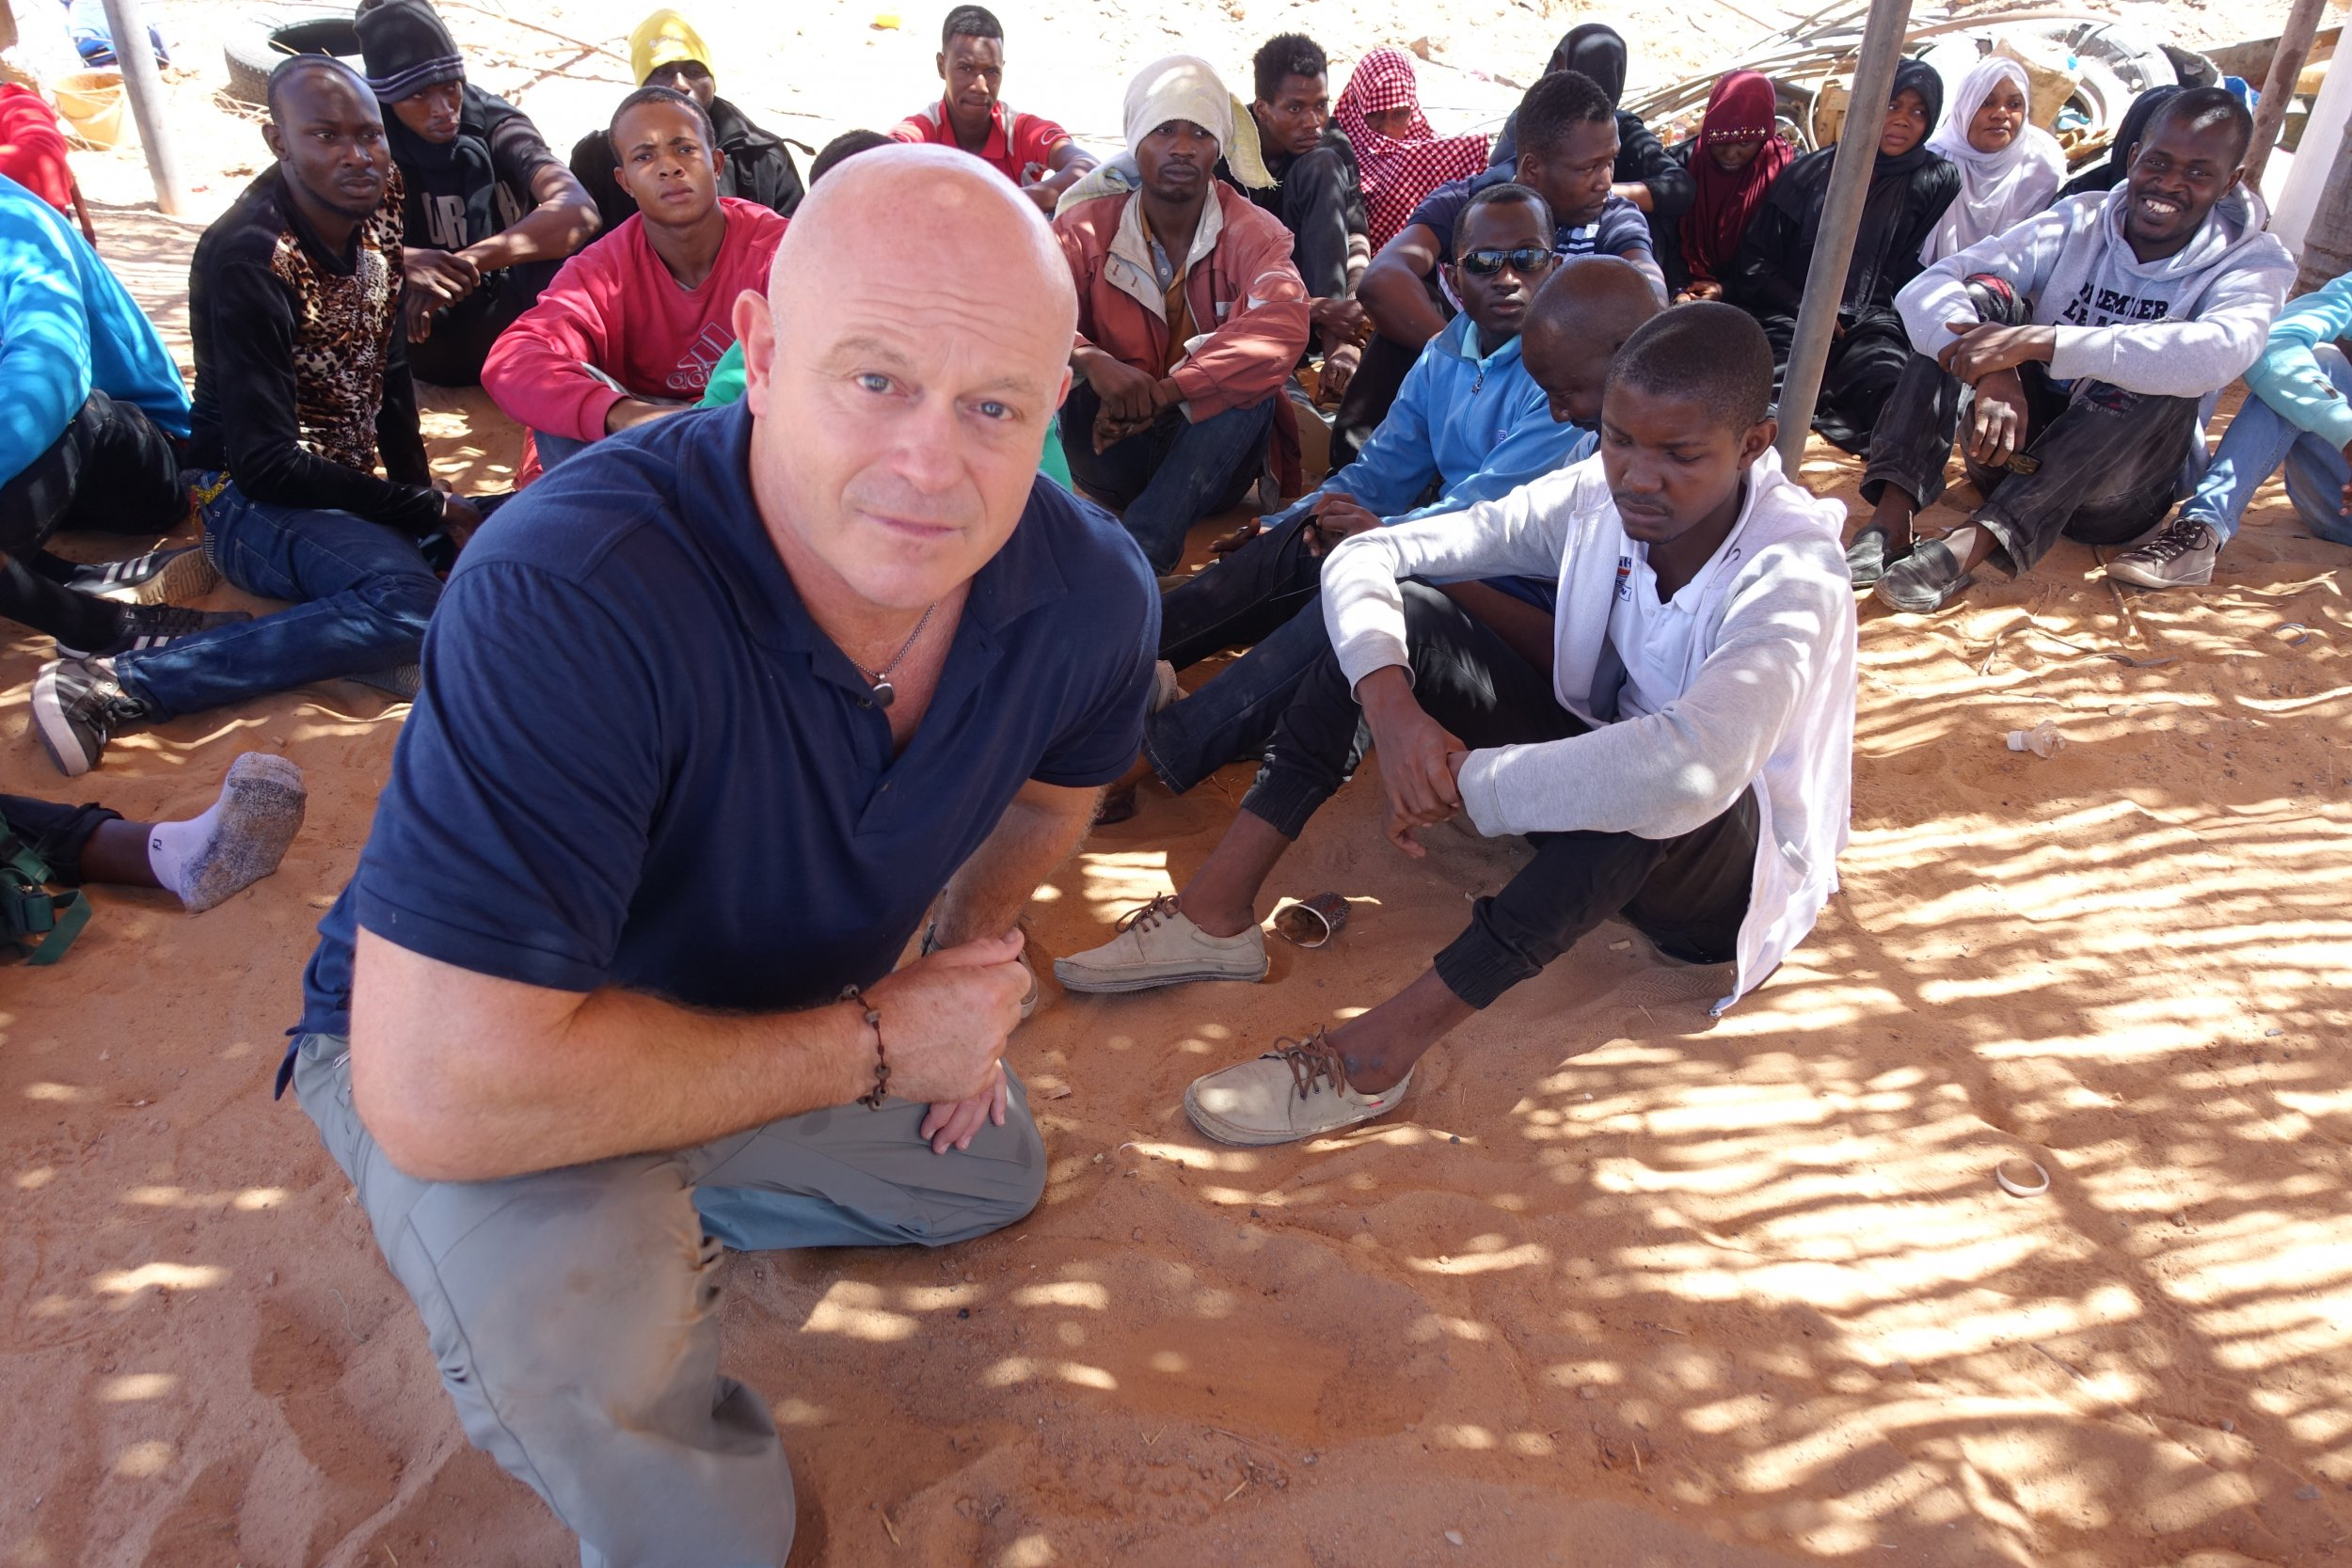 Ross Kemp migrants